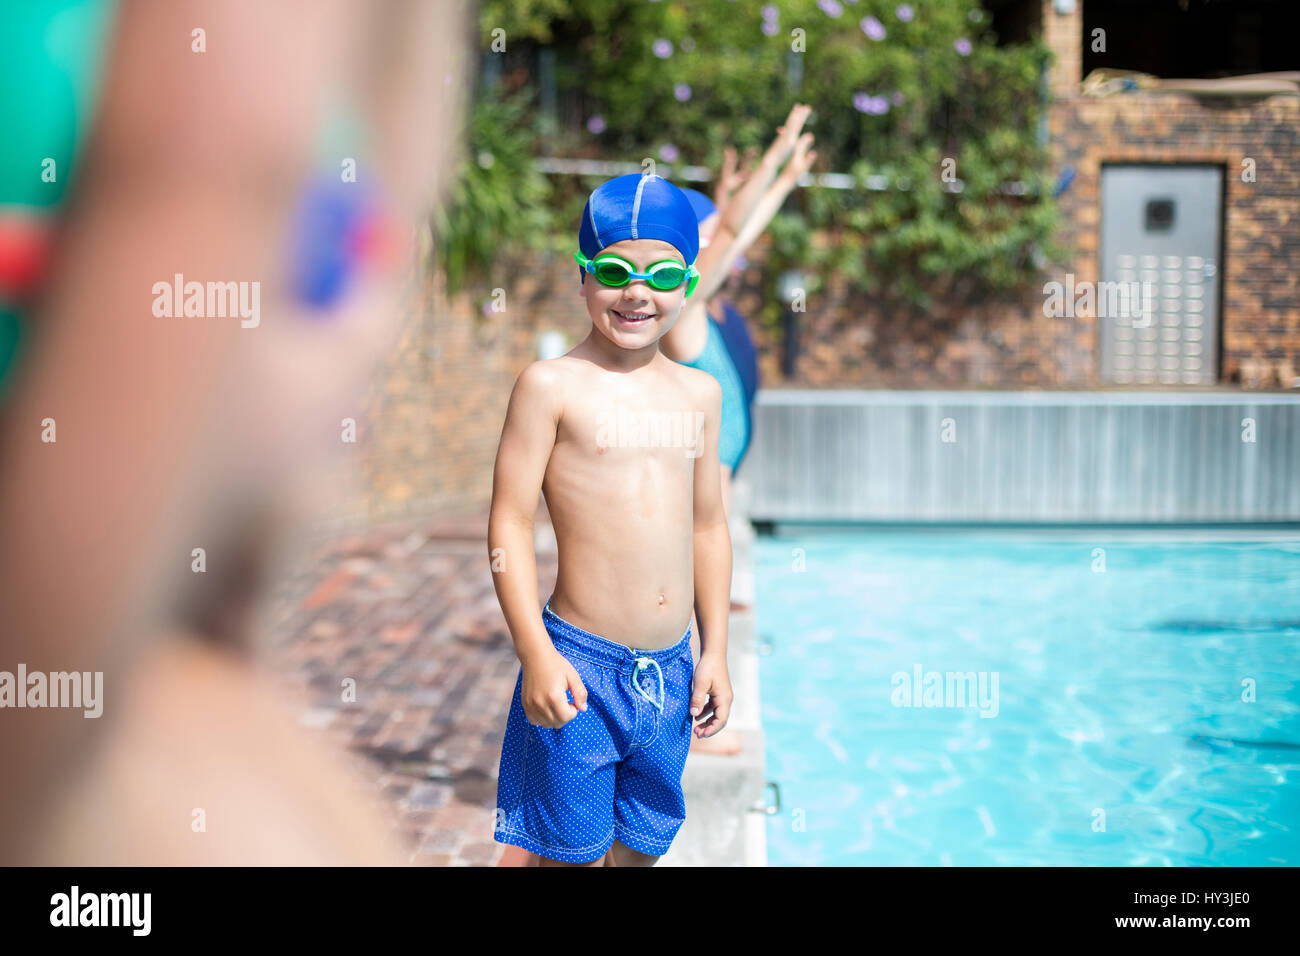 4996575747 Swimming Goggle Stock Photos & Swimming Goggle Stock Images - Alamy